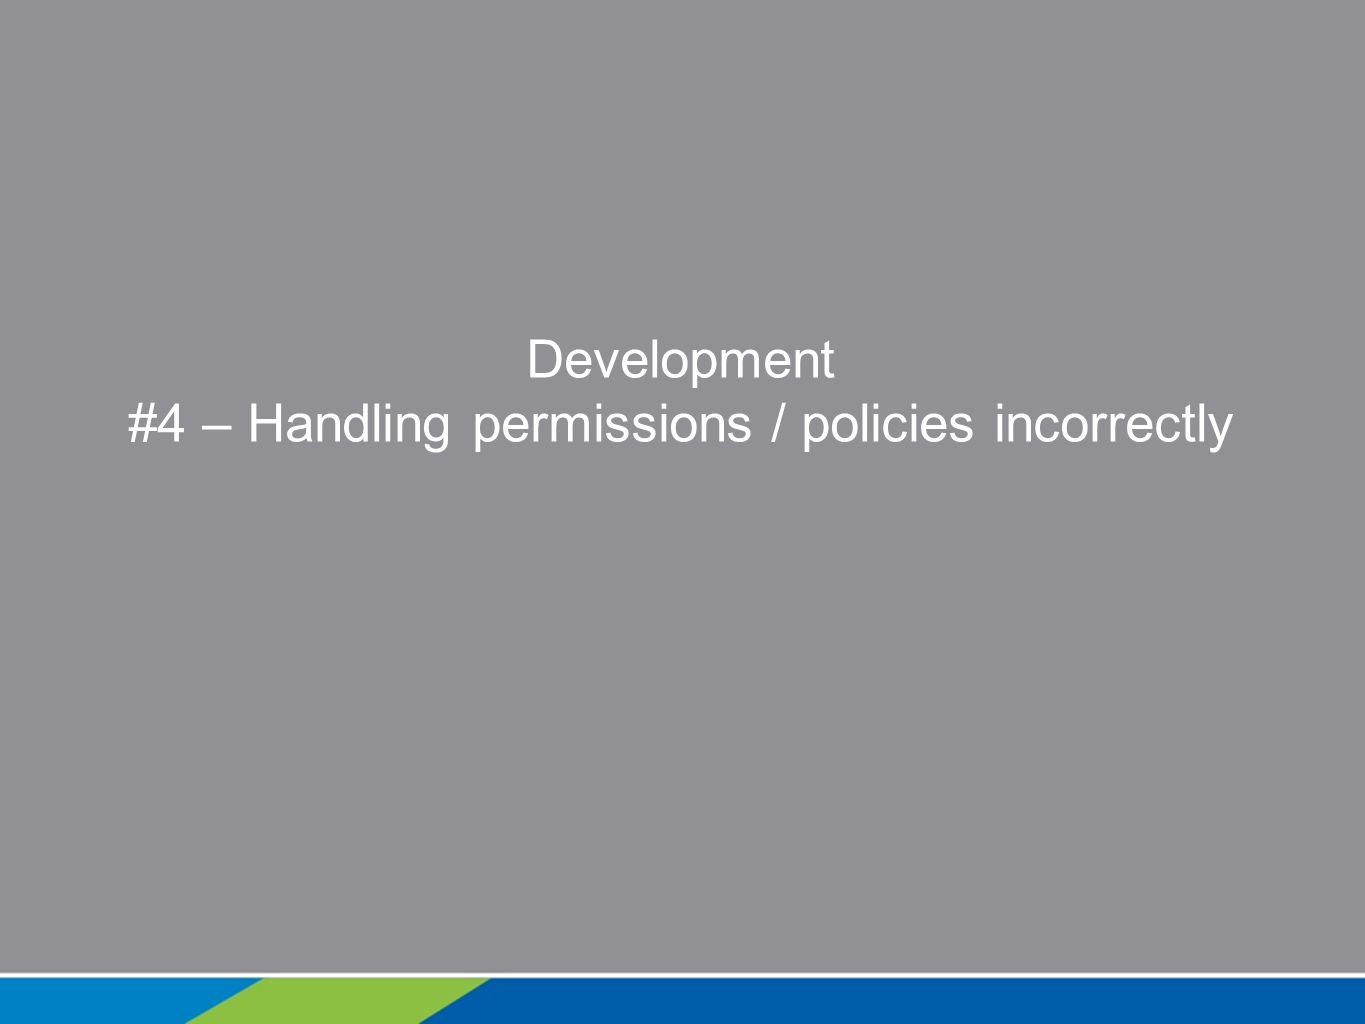 Development #4 – Handling permissions / policies incorrectly